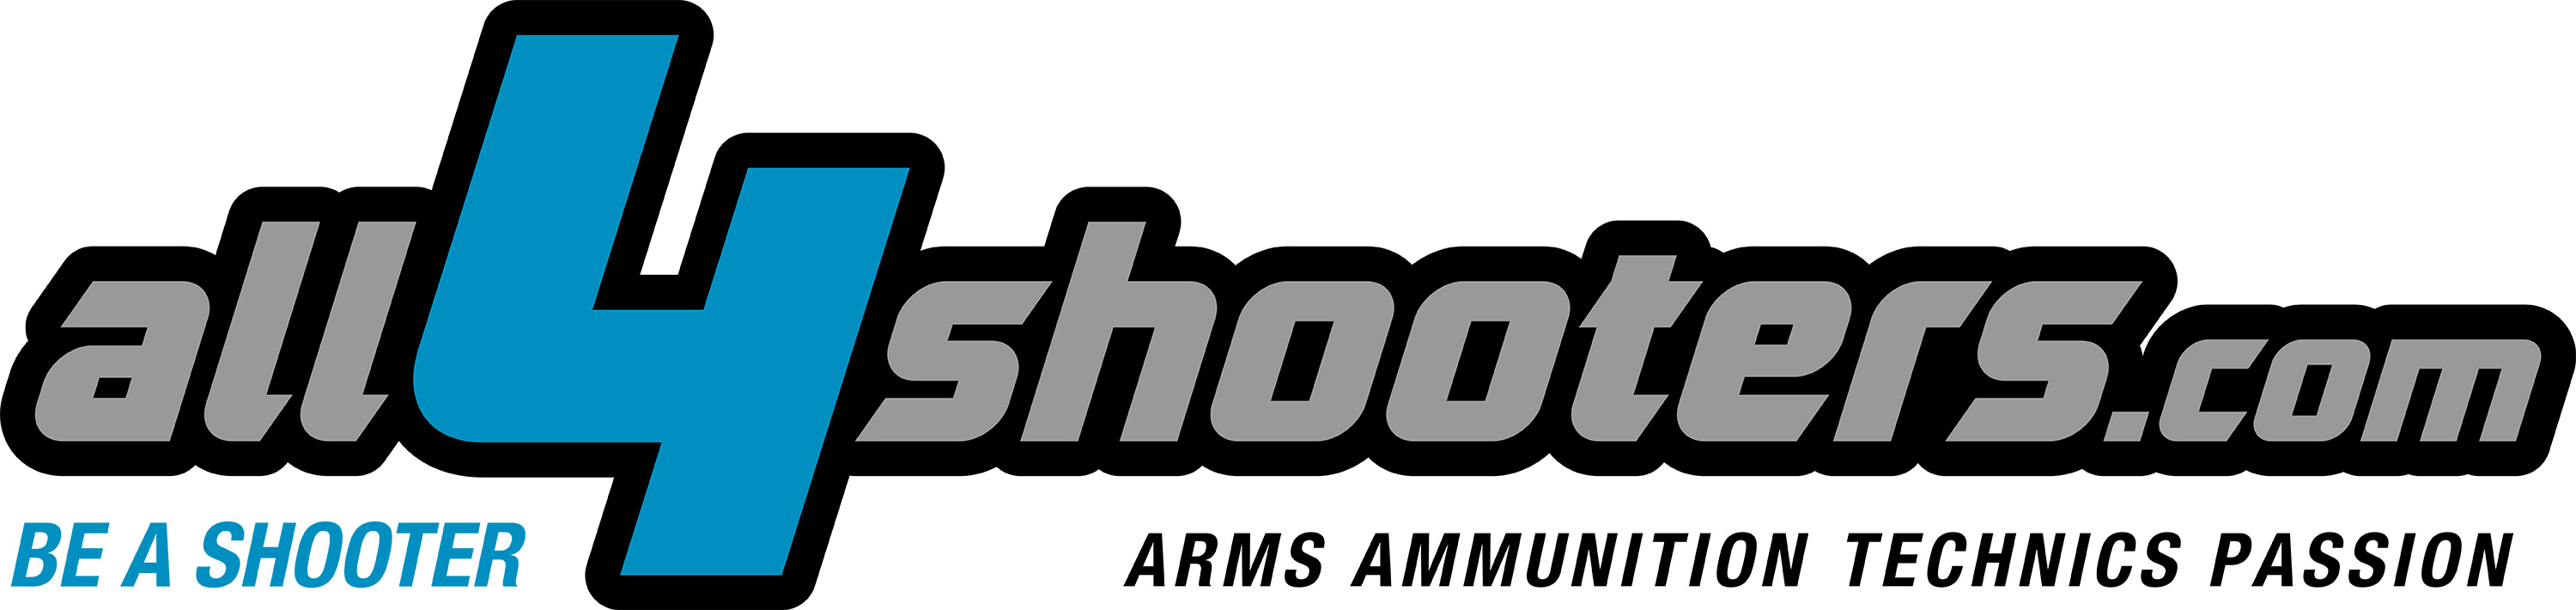 all4shooters logo